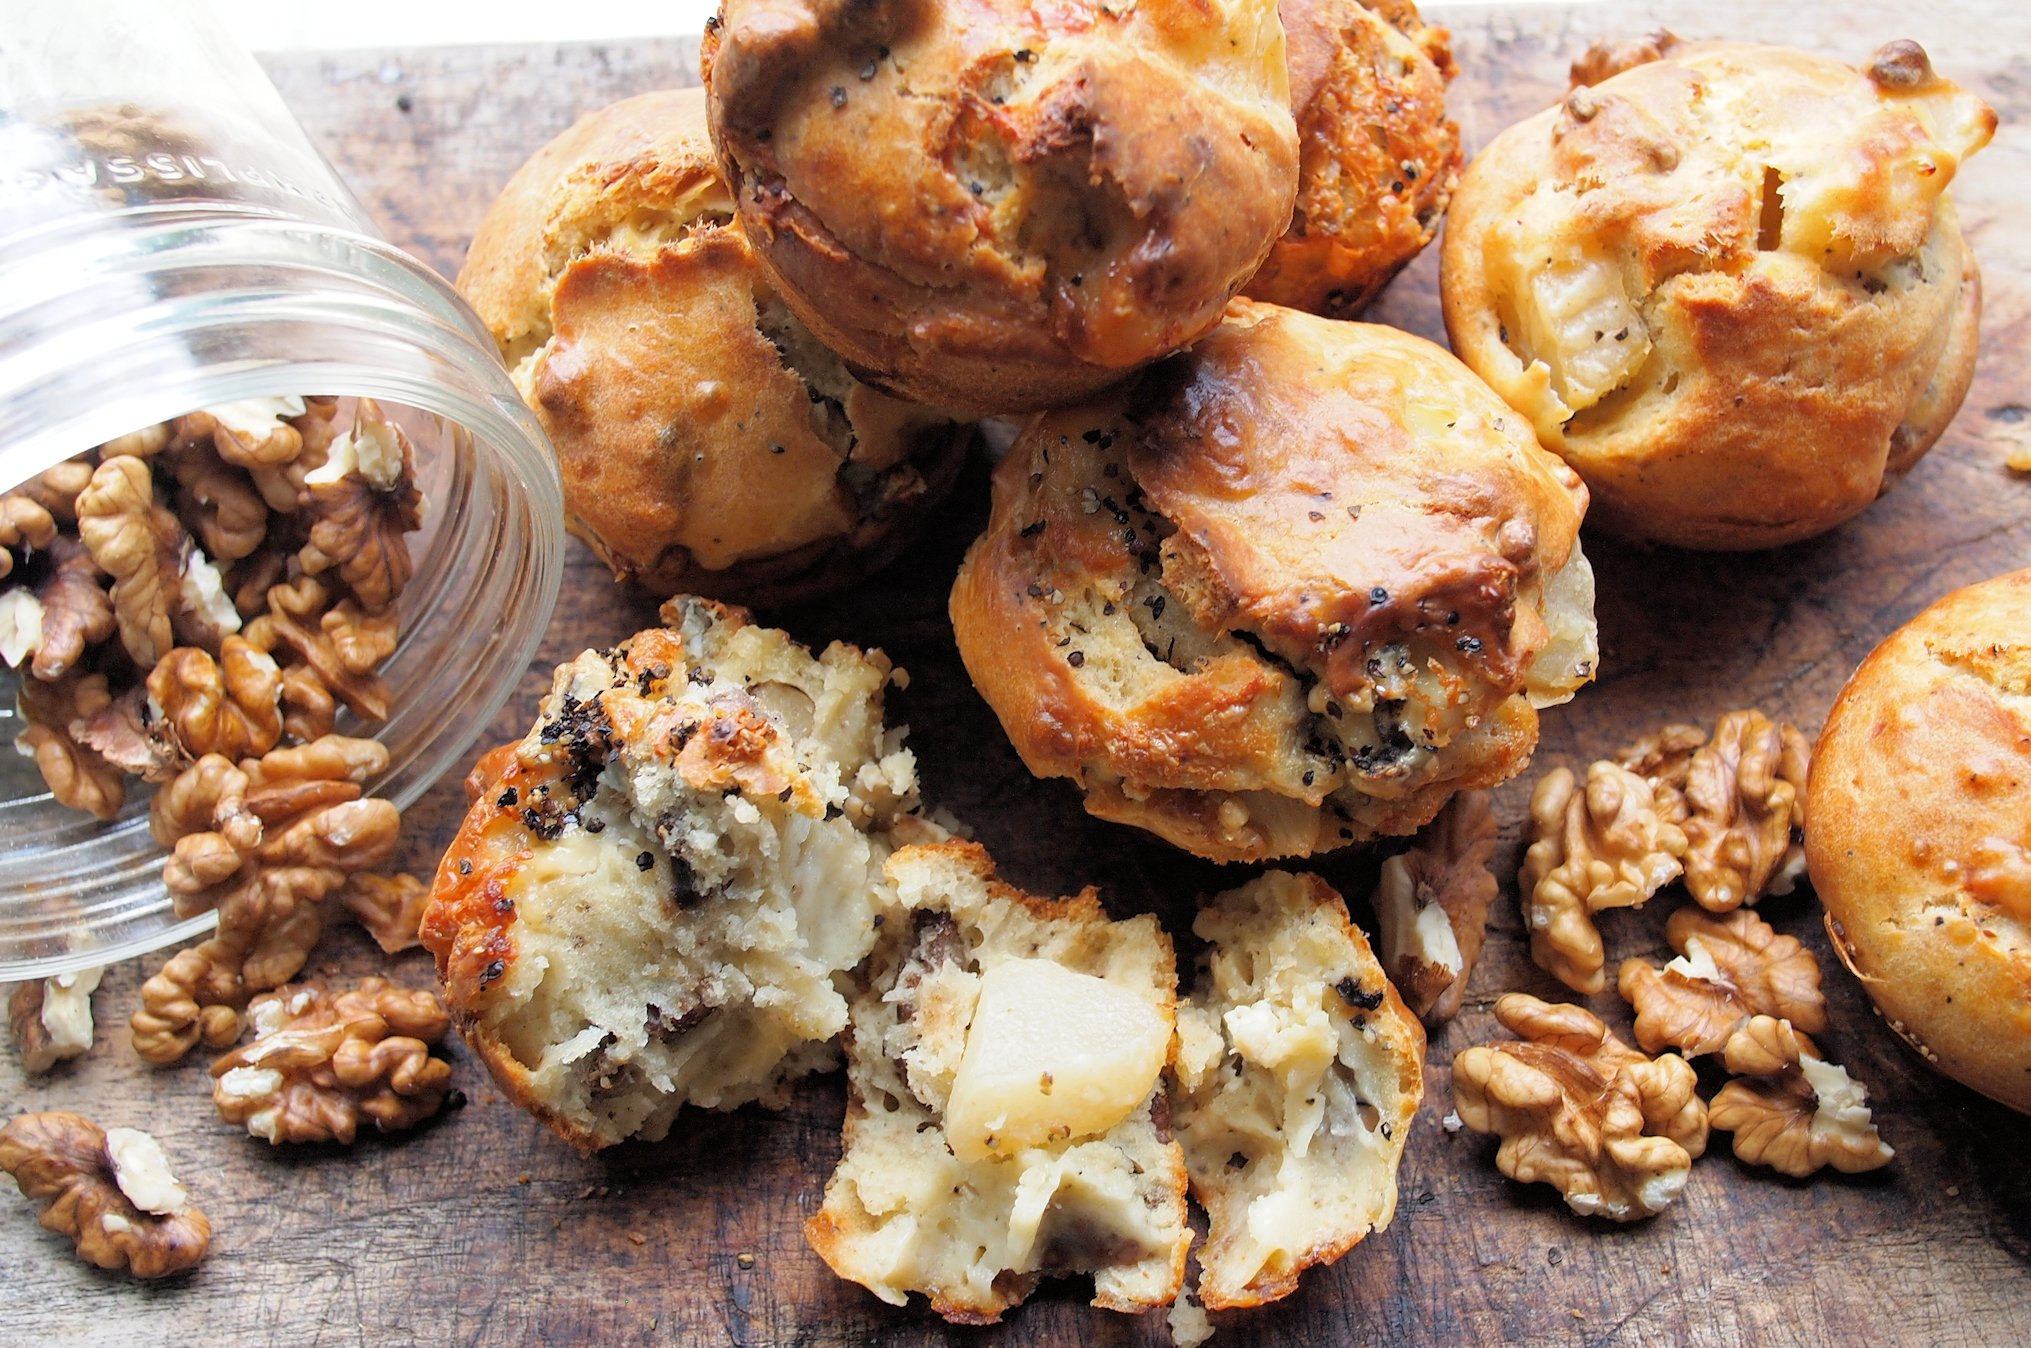 Summer Holiday Pear,Walnut & Goat's Cheese Breakfast Buns (Muffins)